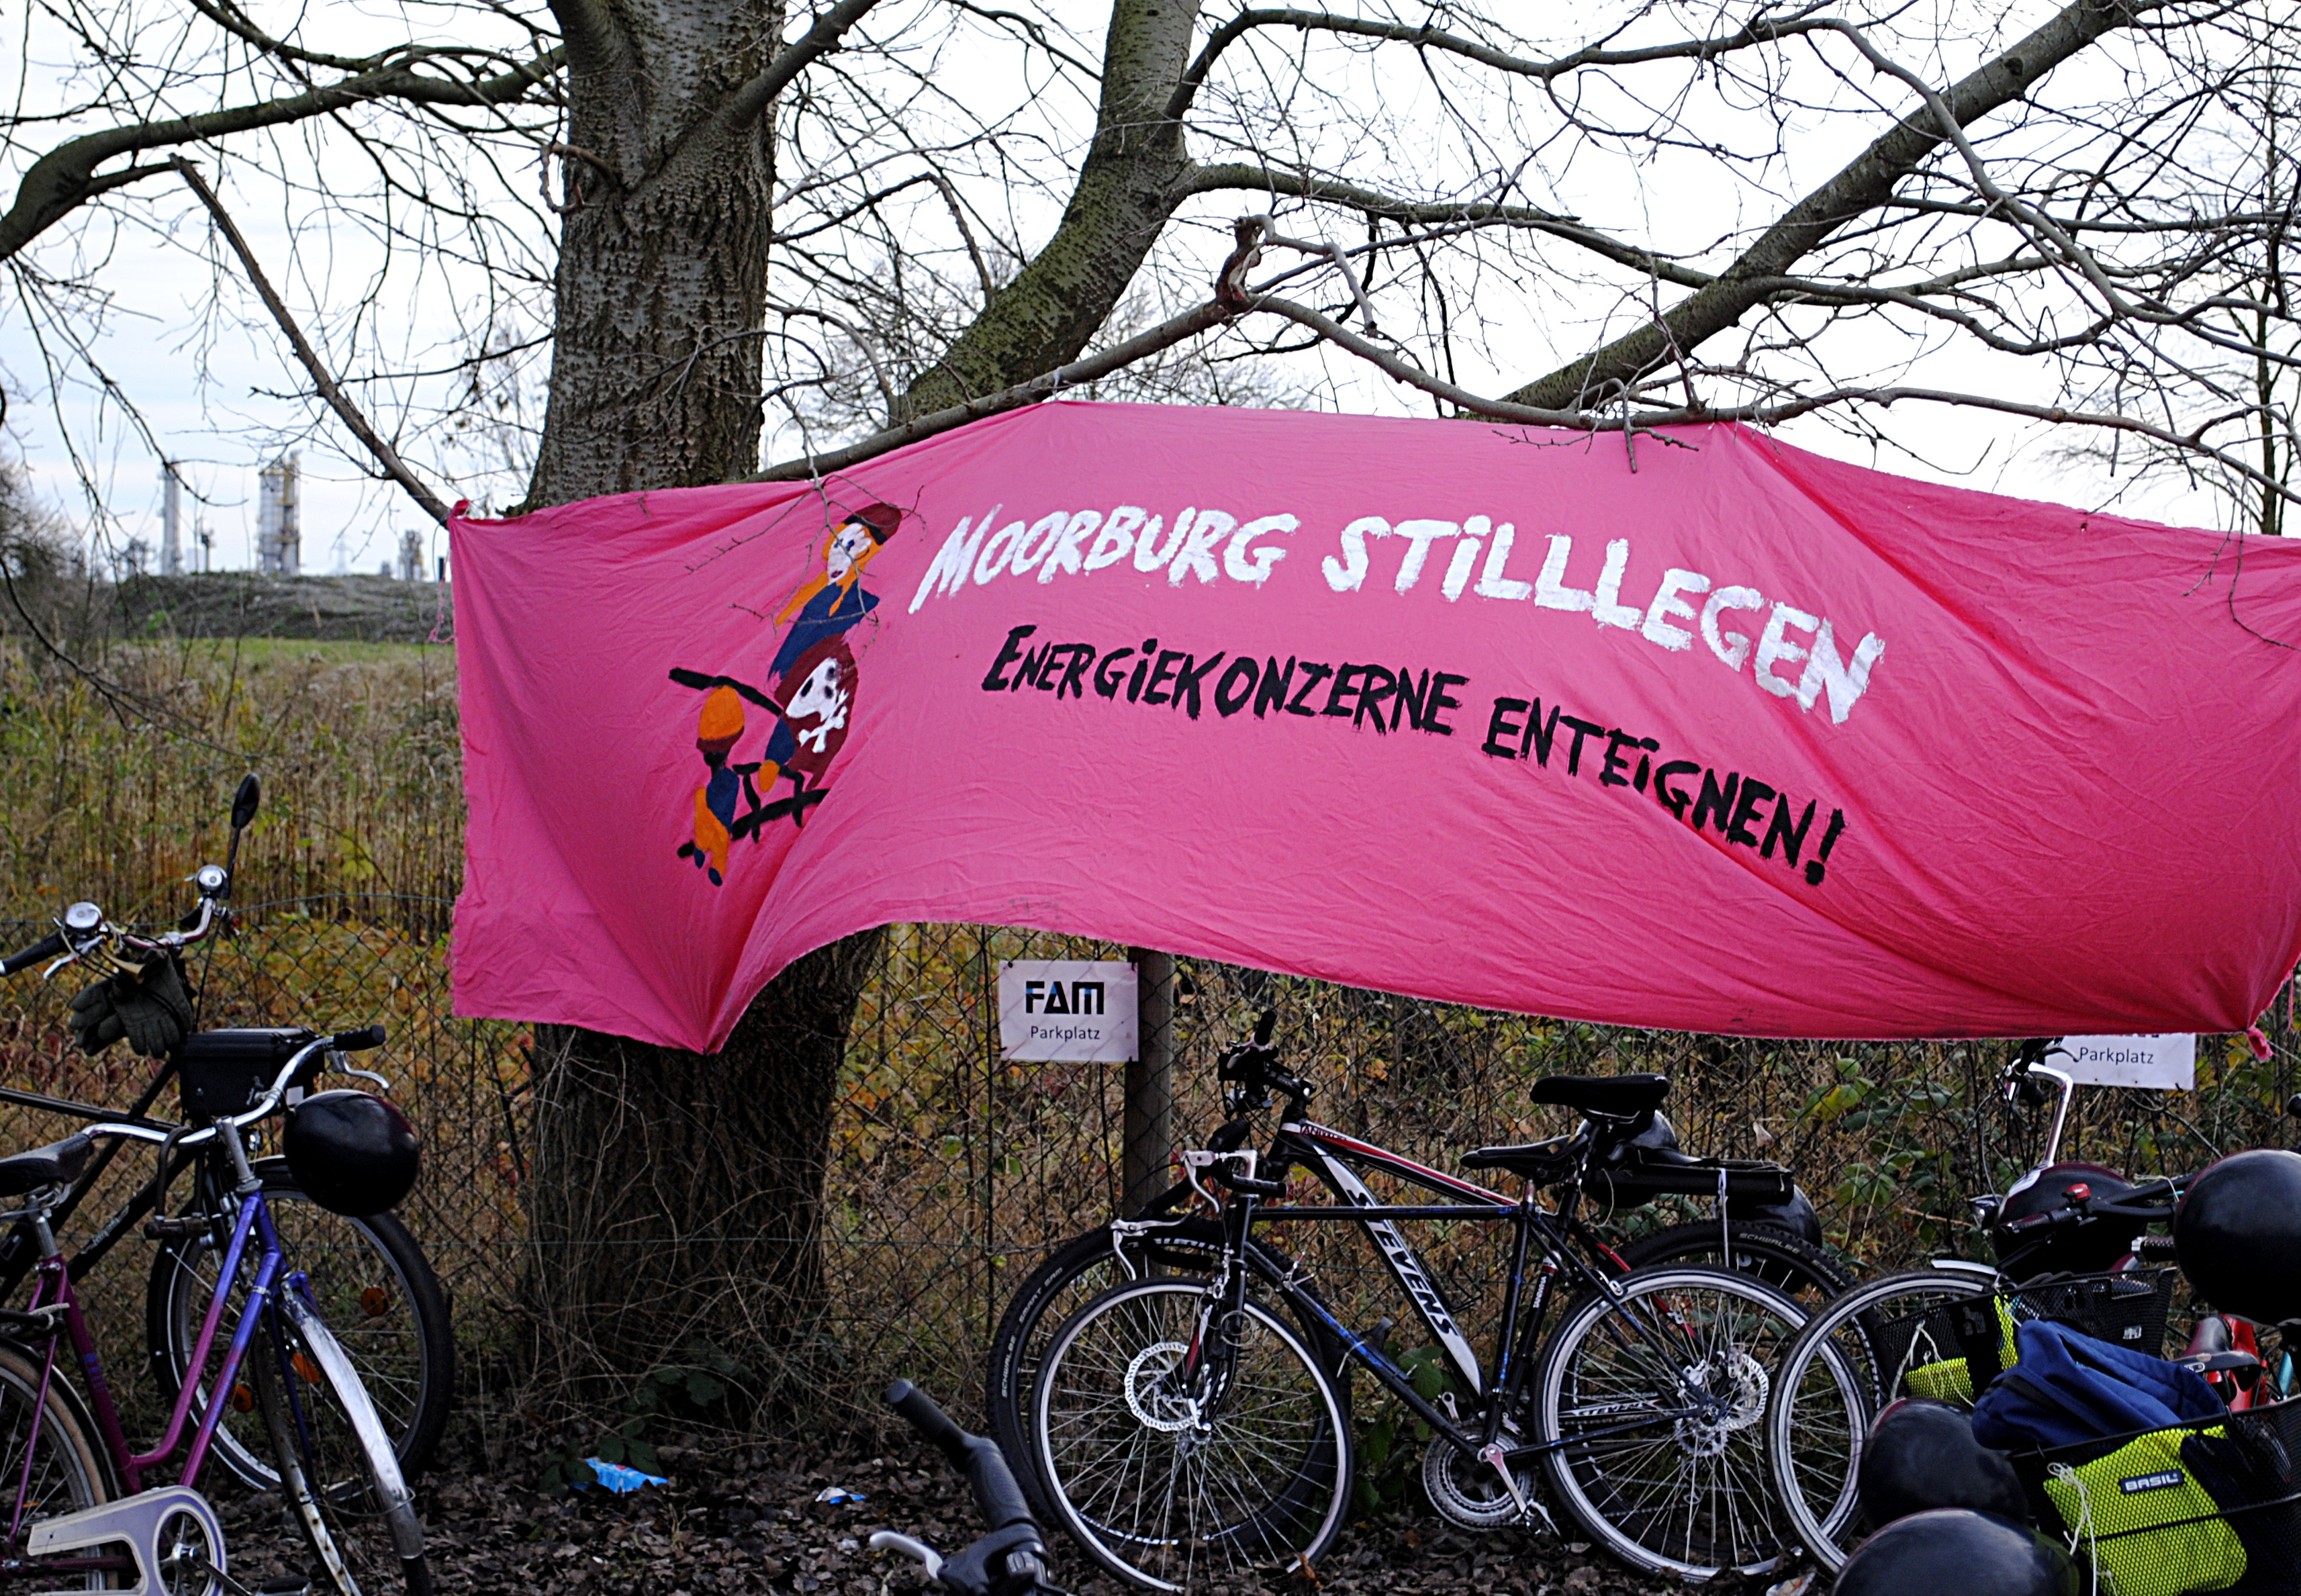 Transparent: Moorburg stilllegen - Energiekonzerne enteignen!